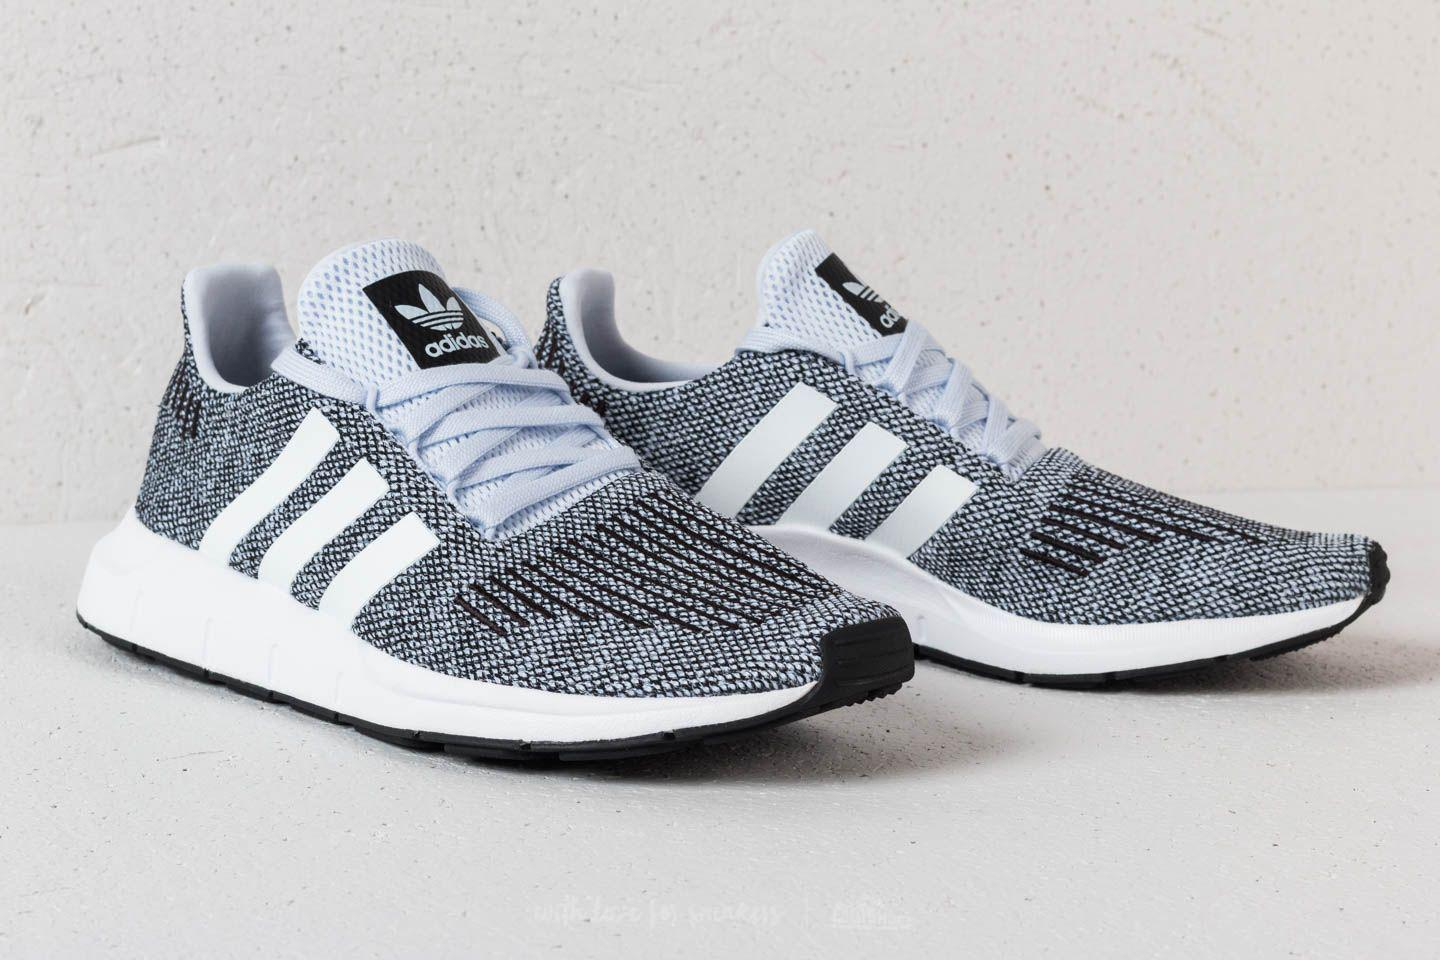 366fadaa20b71 Lyst - adidas Originals Adidas Swift Run Aero Blue  Ftw White  Core ...